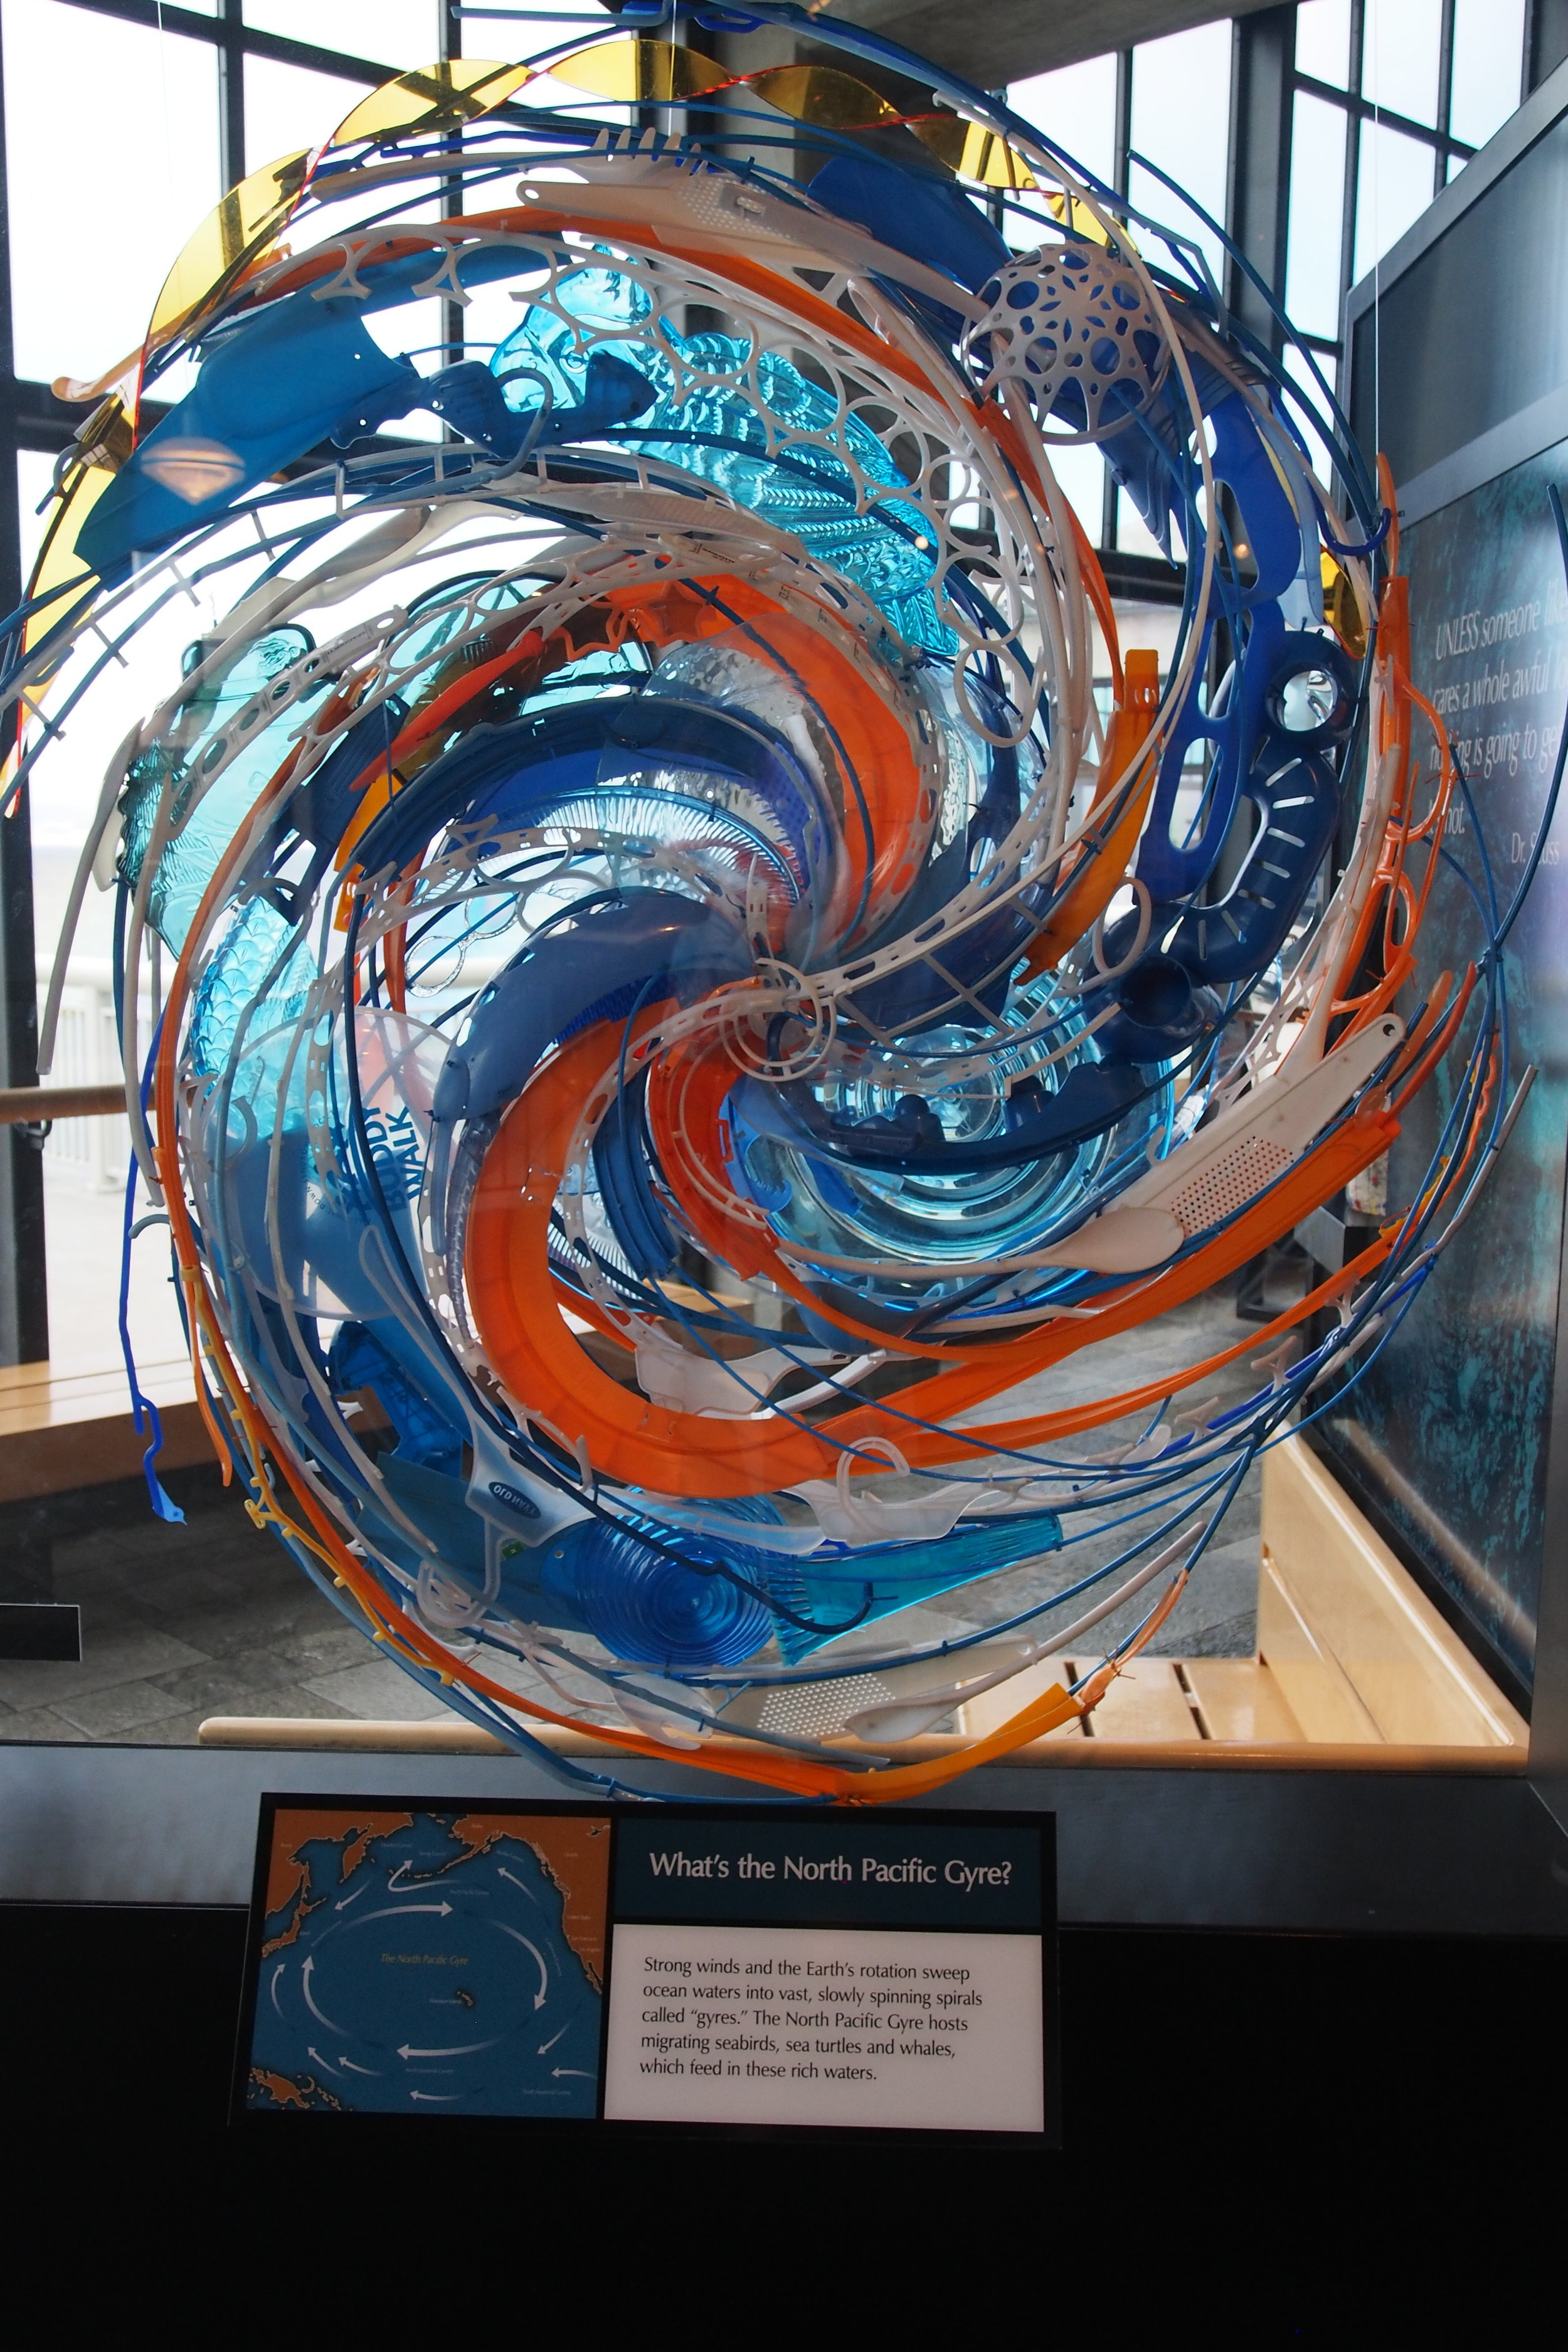 Recycled gyre